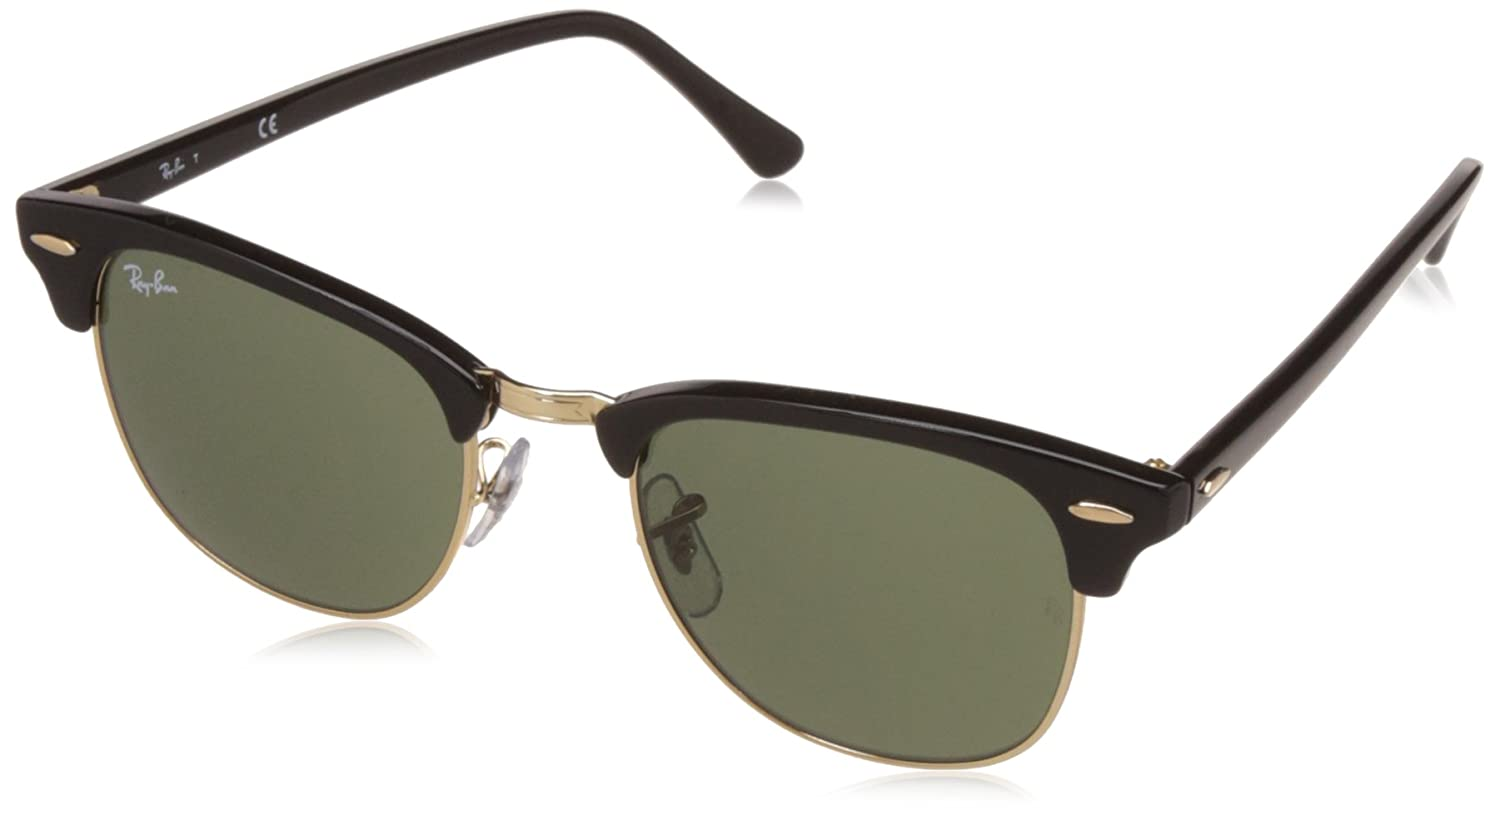 0d019ec3ea Amazon.com  Ray-Ban CLUBMASTER - EBONY  ARISTA Frame CRYSTAL GREEN Lenses  51mm Non-Polarized  Ray-Ban  Clothing